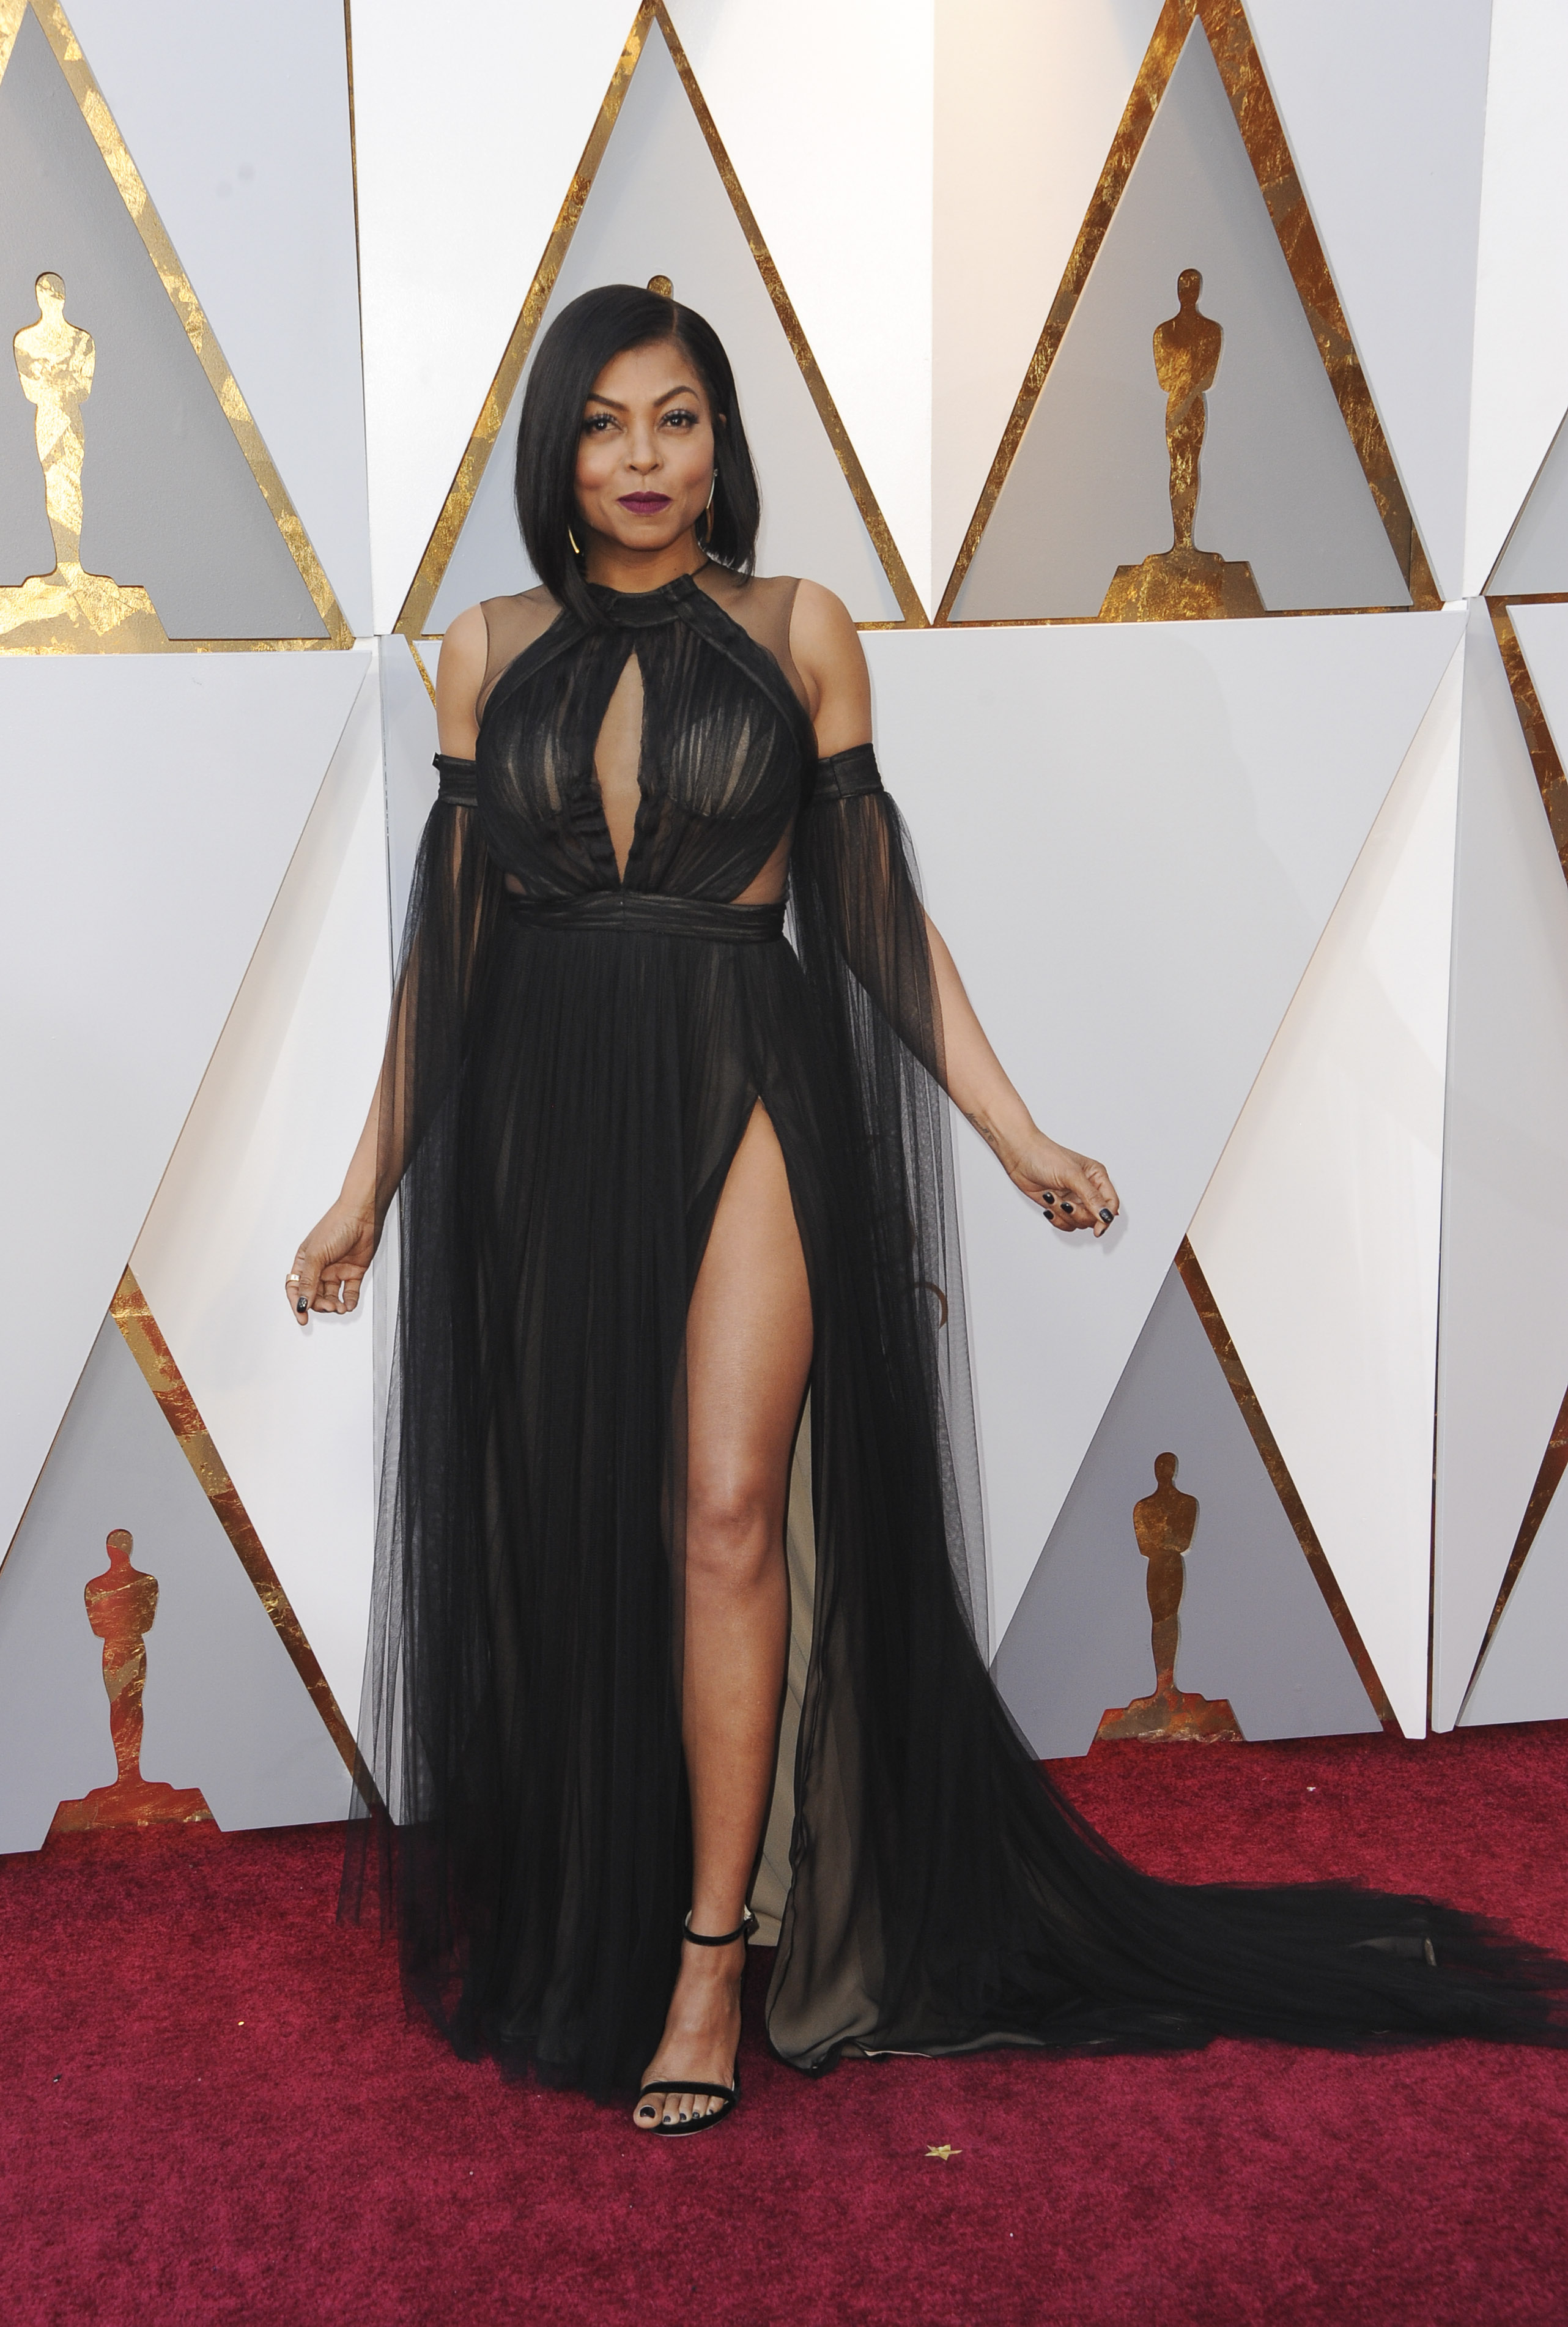 Taraji P. Henson{&amp;nbsp;}arrives at the 90th Annual Academy Awards (Oscars) held at the Dolby Theater in Hollywood, California. (Image: Apega/WENN.com)<p></p>